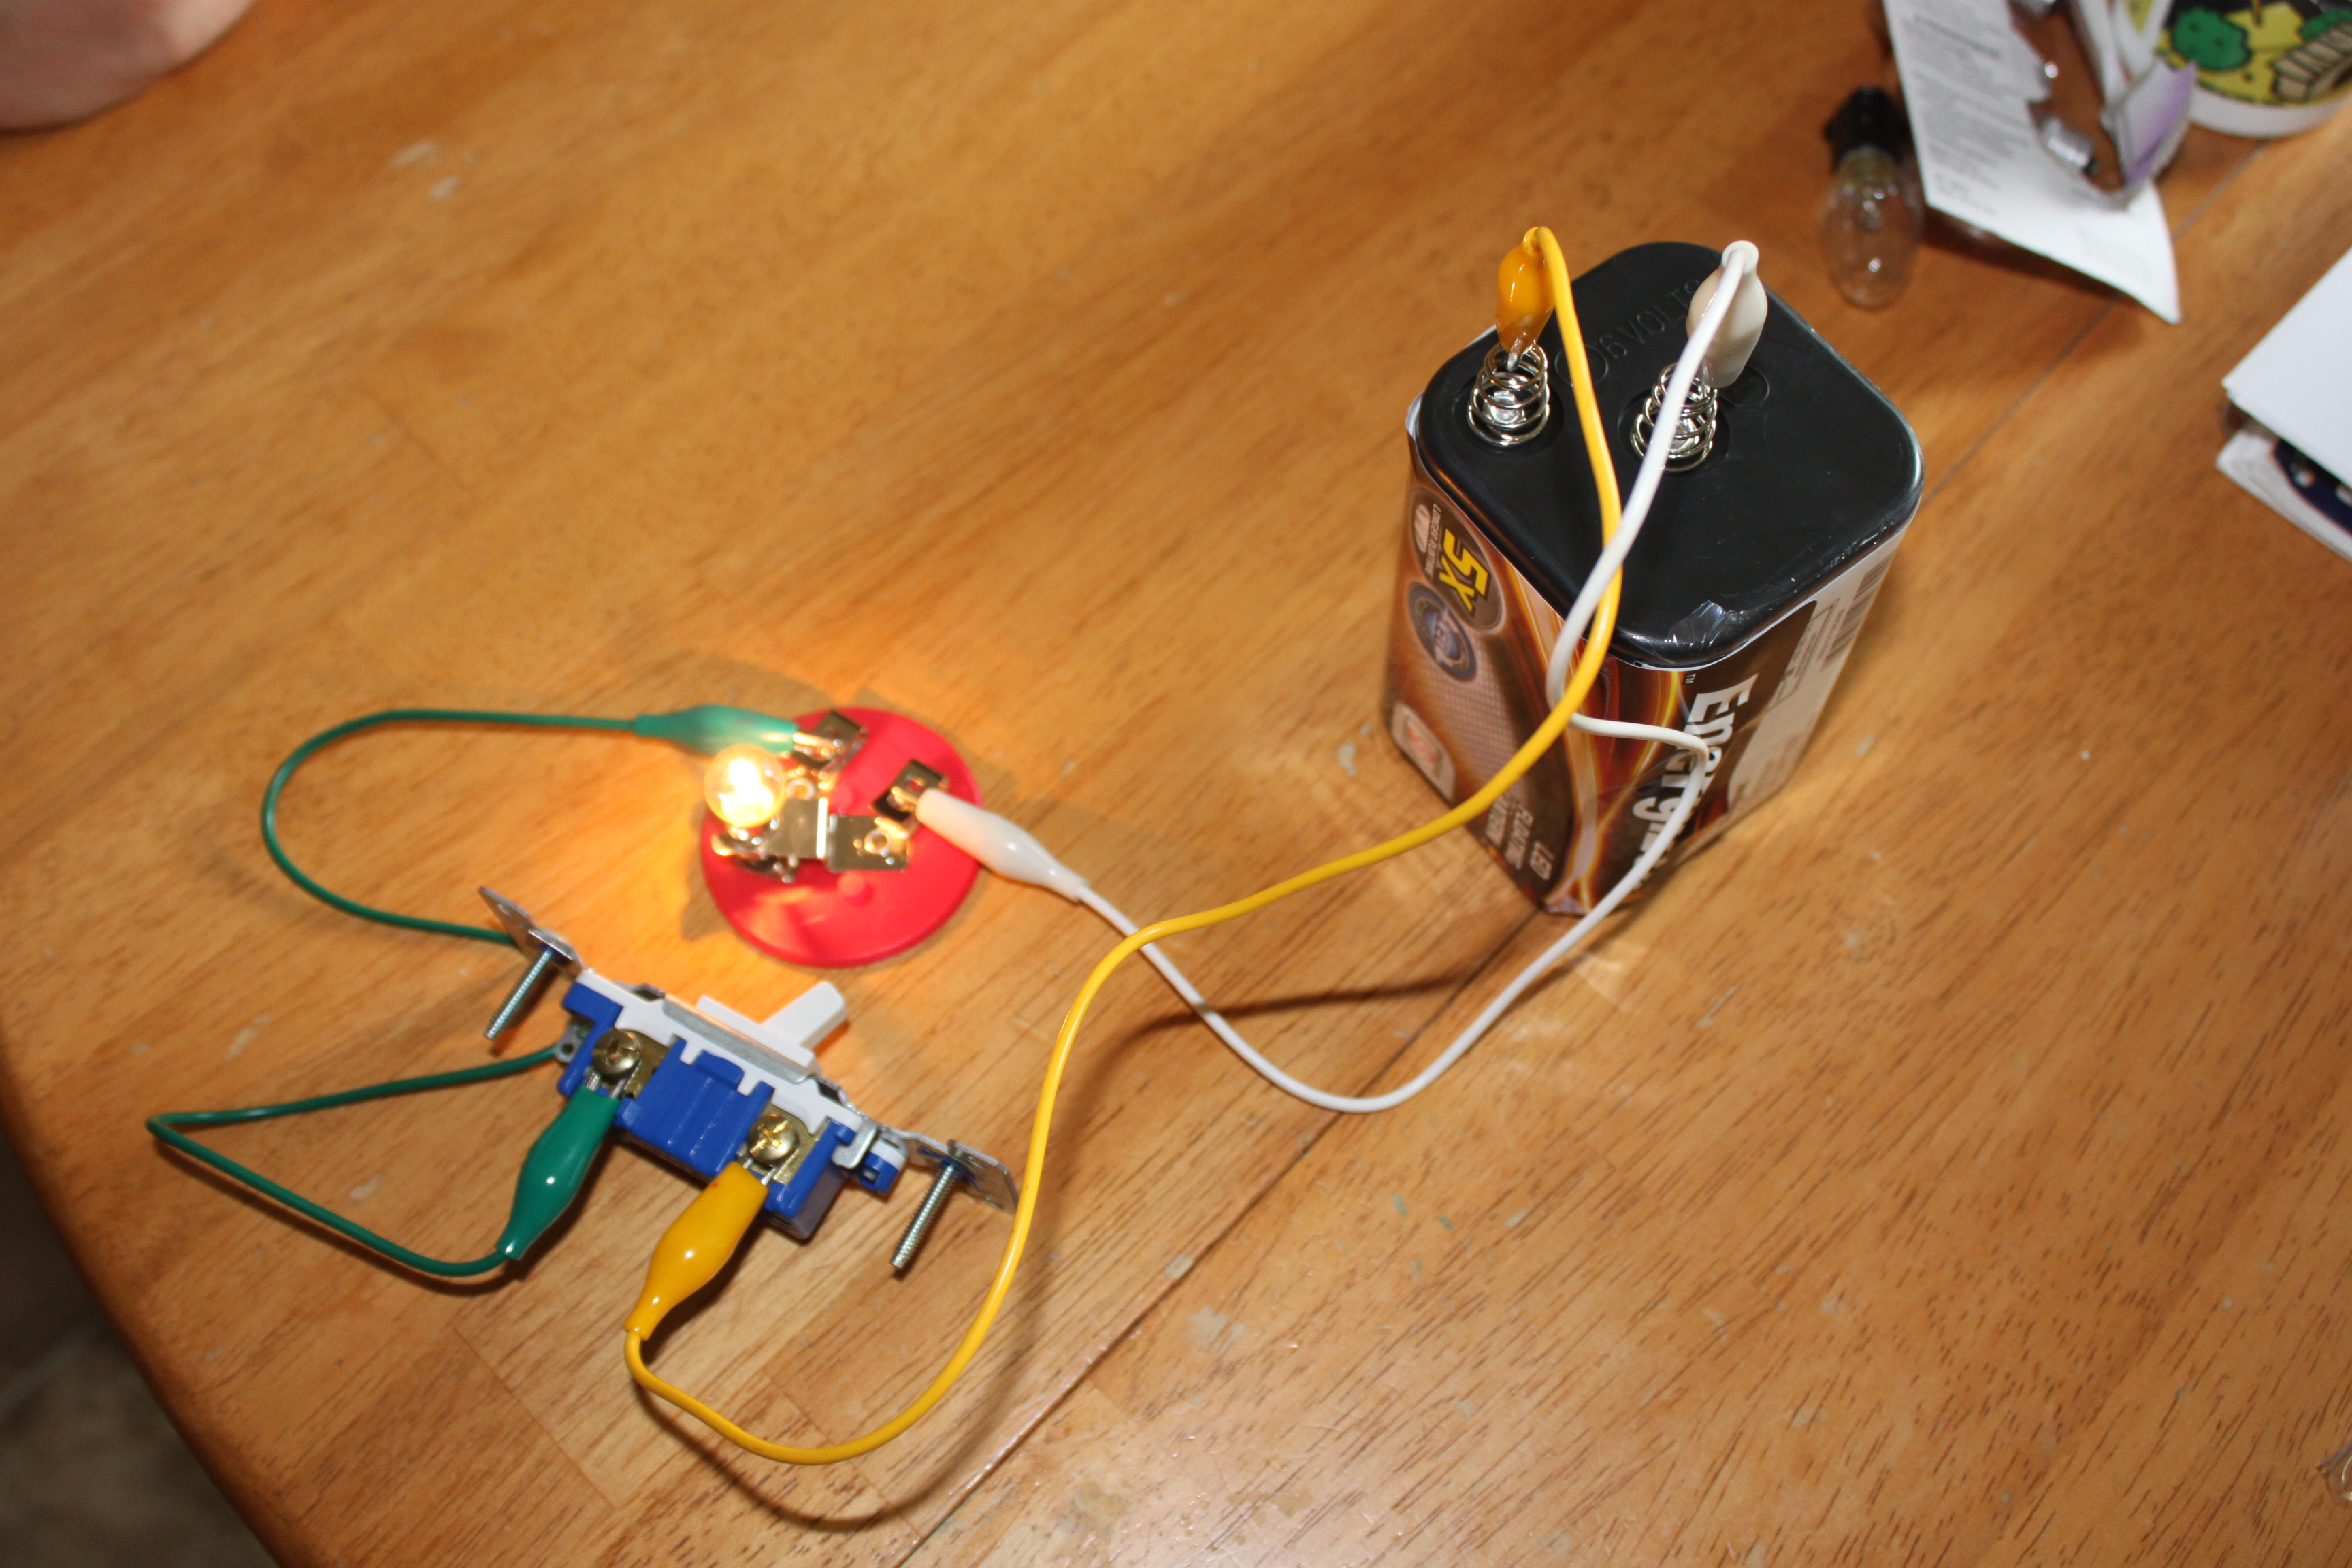 Electricity Experiments For Kids Frugal Fun Boys And Girls Easy To Build Buzzer Circuit The